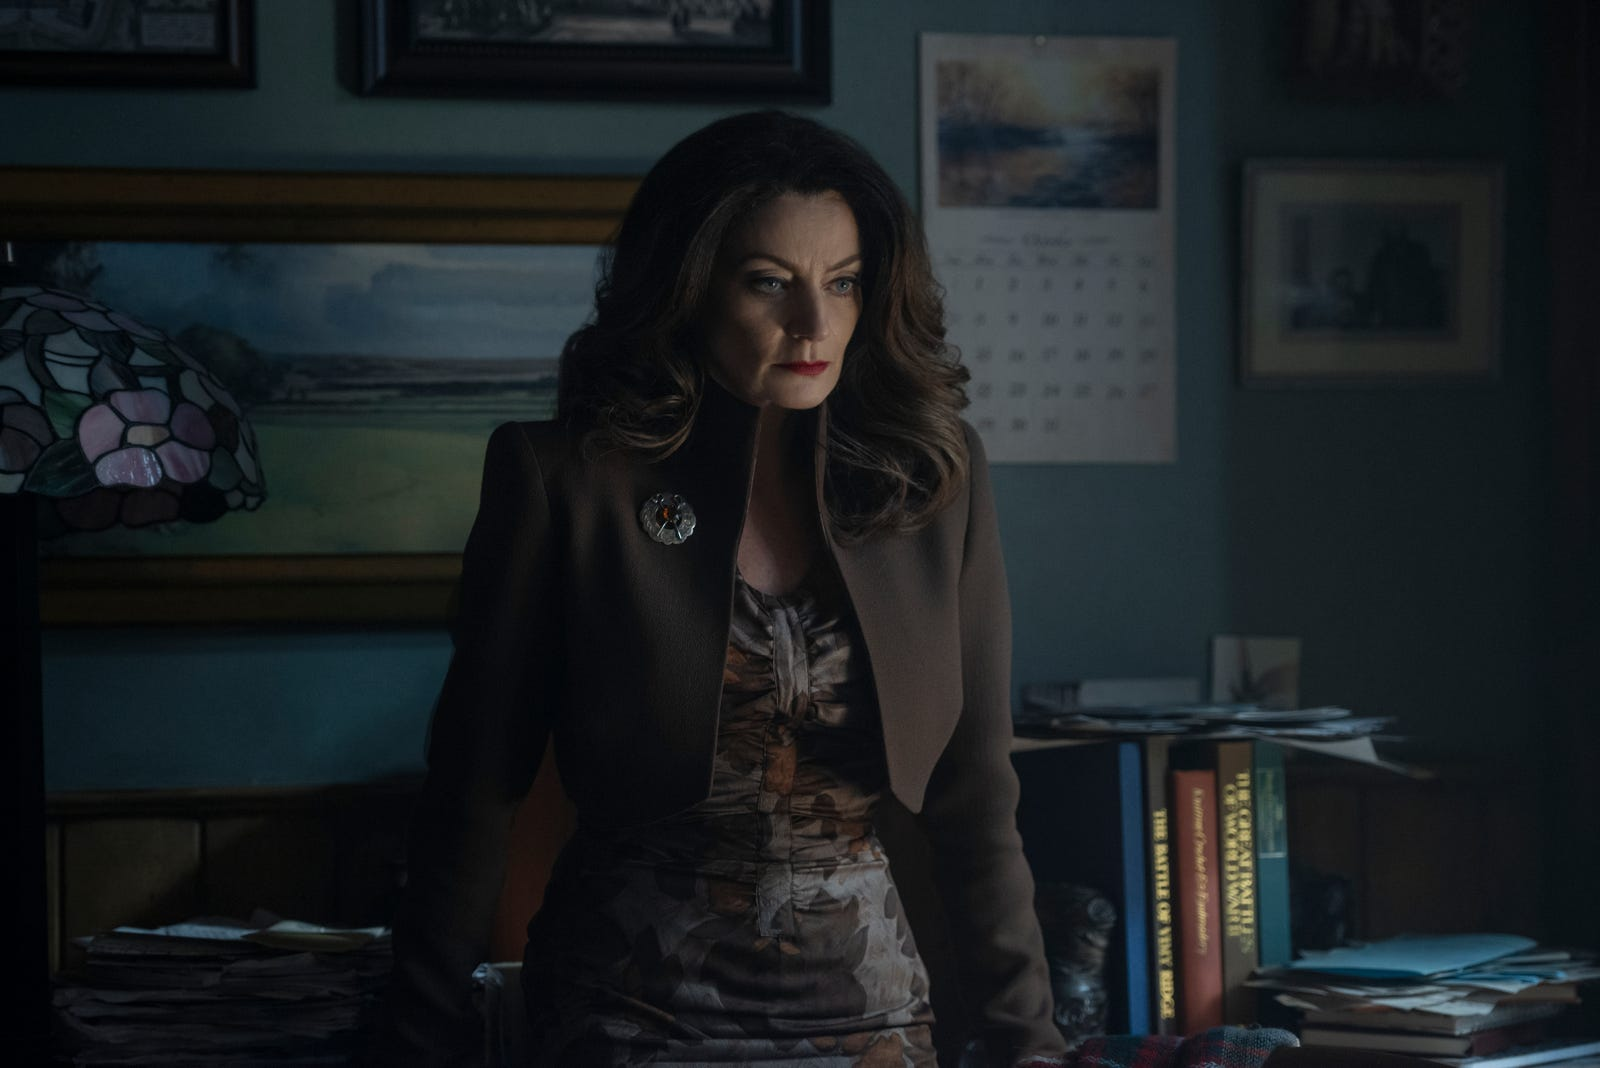 Michelle Gomez is looking perfectly devilish as Madame Satan, a servant of the Dark Lord who's possessed Sabrina's favorite teacher to ensure she goes down the Path of Night.